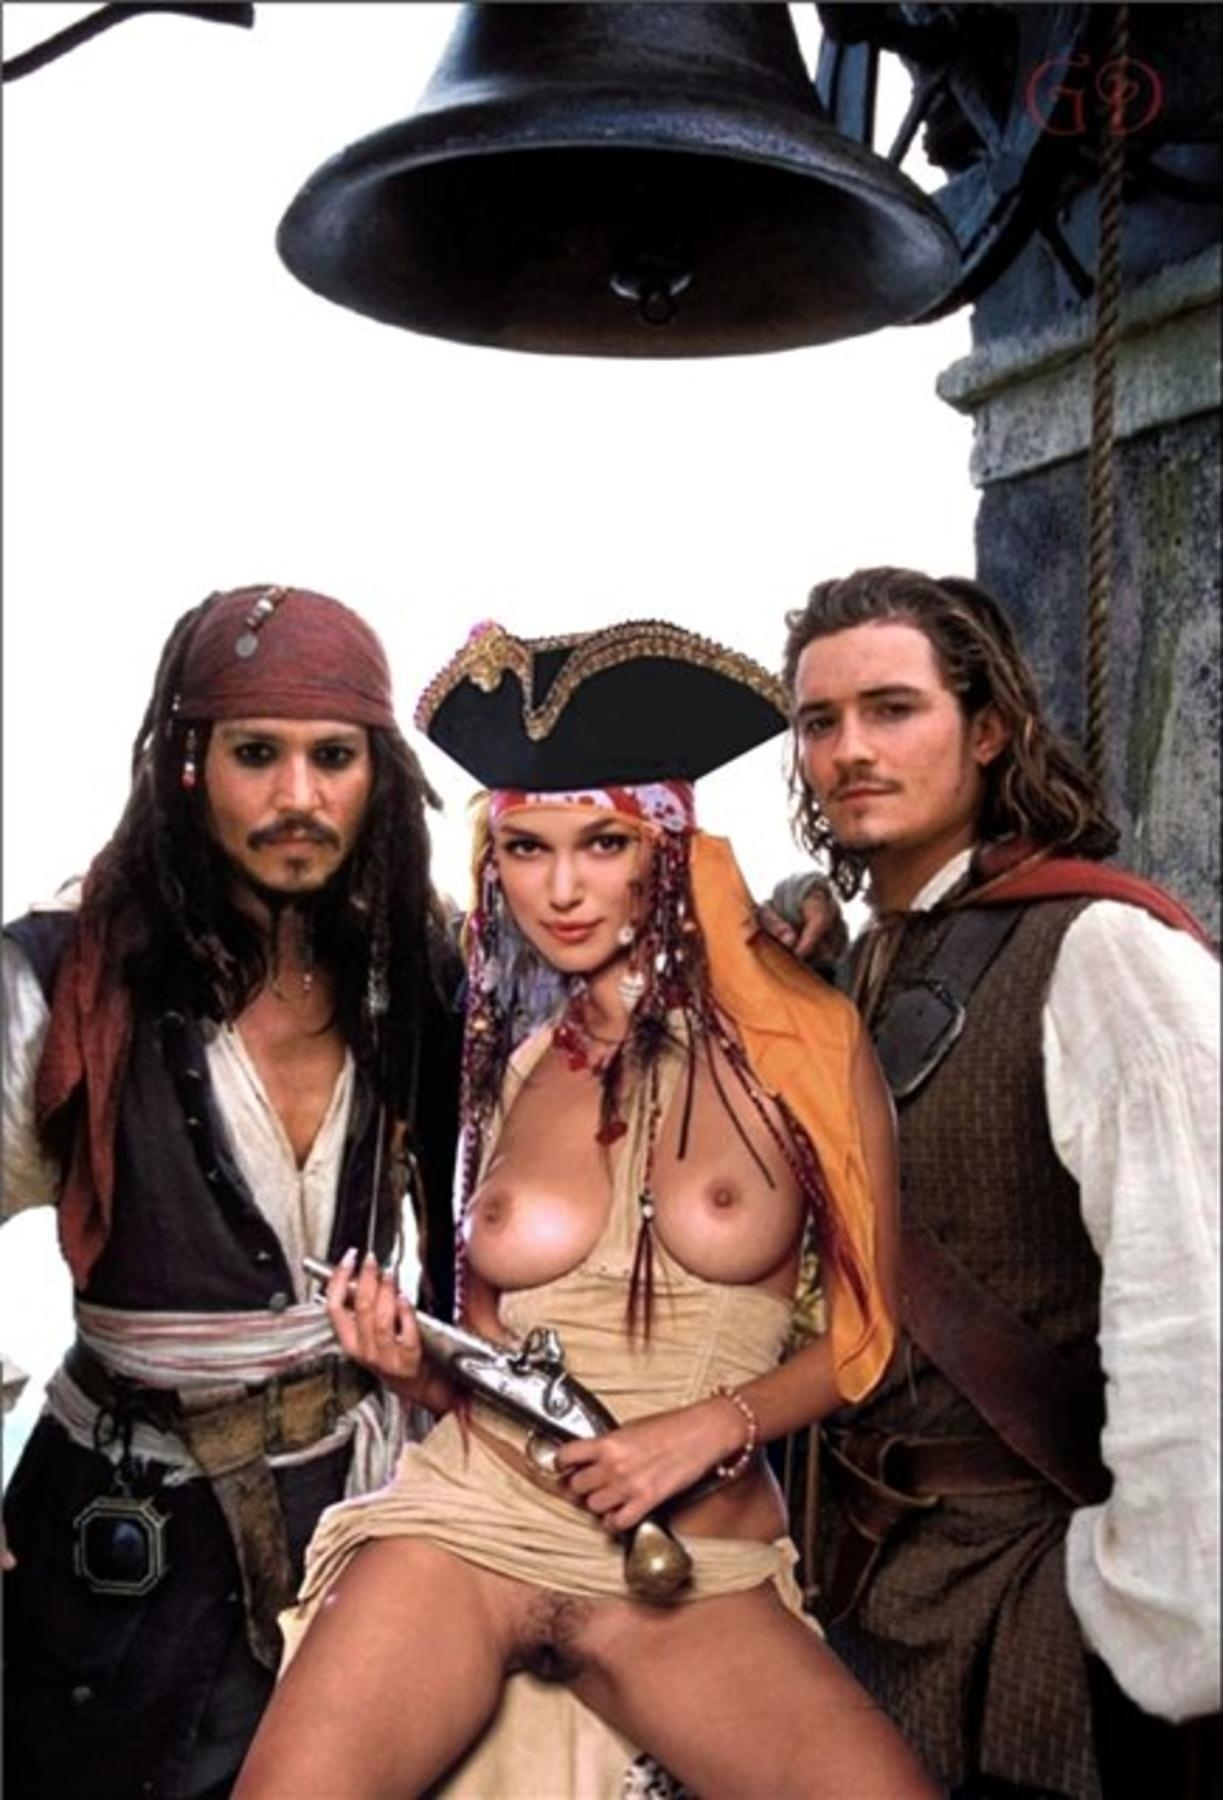 Photos from pirates porn parody softcore tube